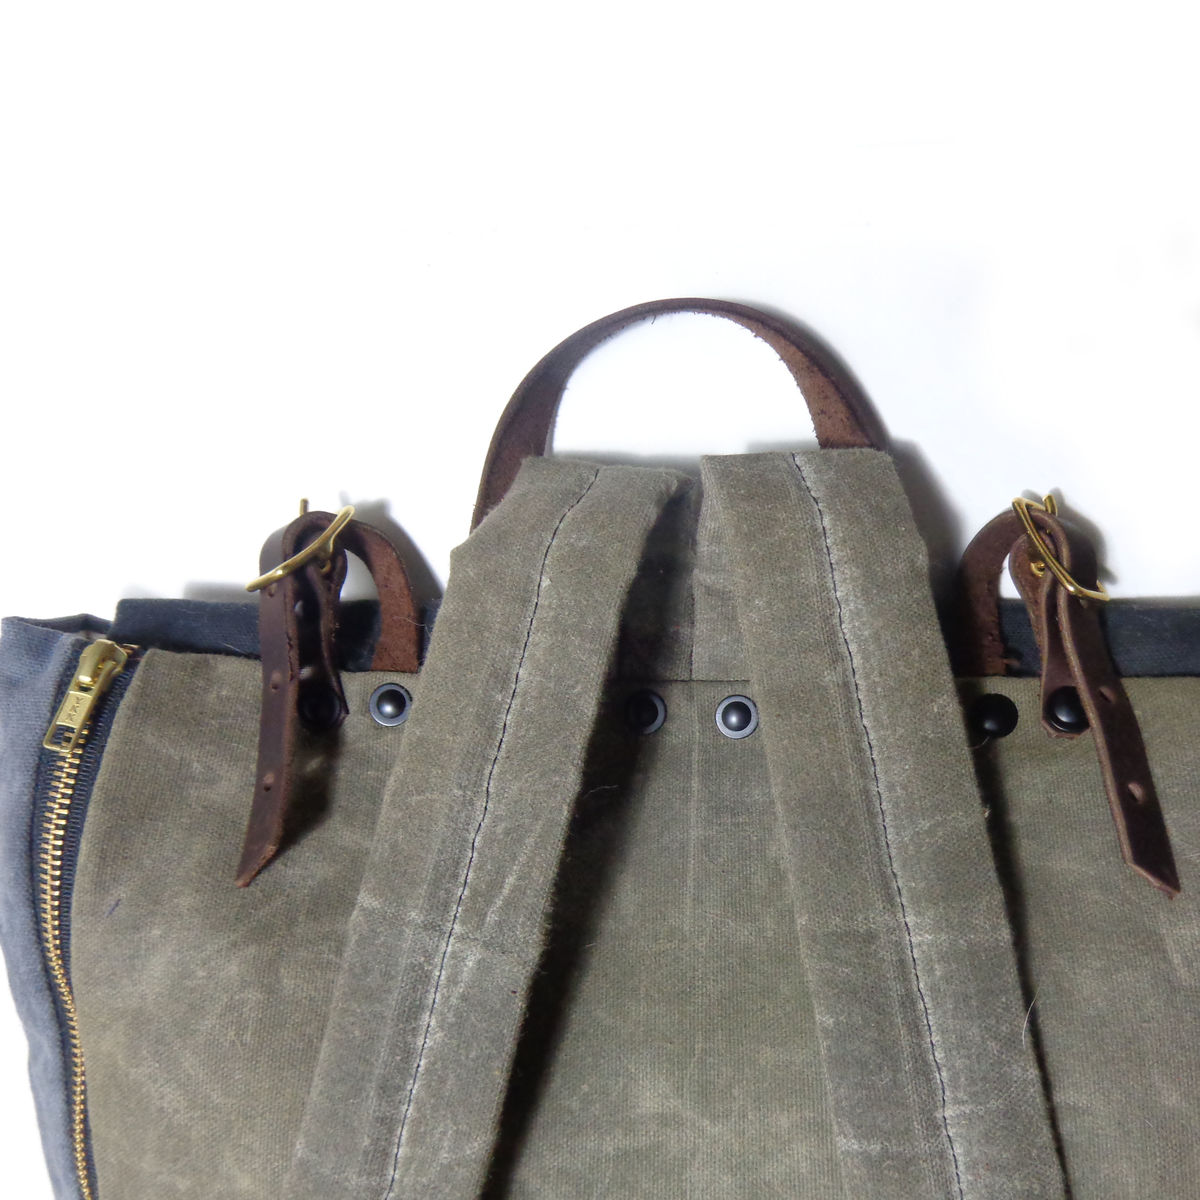 Convertible Laptop Backpack, Tote Strap - Navy, Stripe, Olive - product images  of